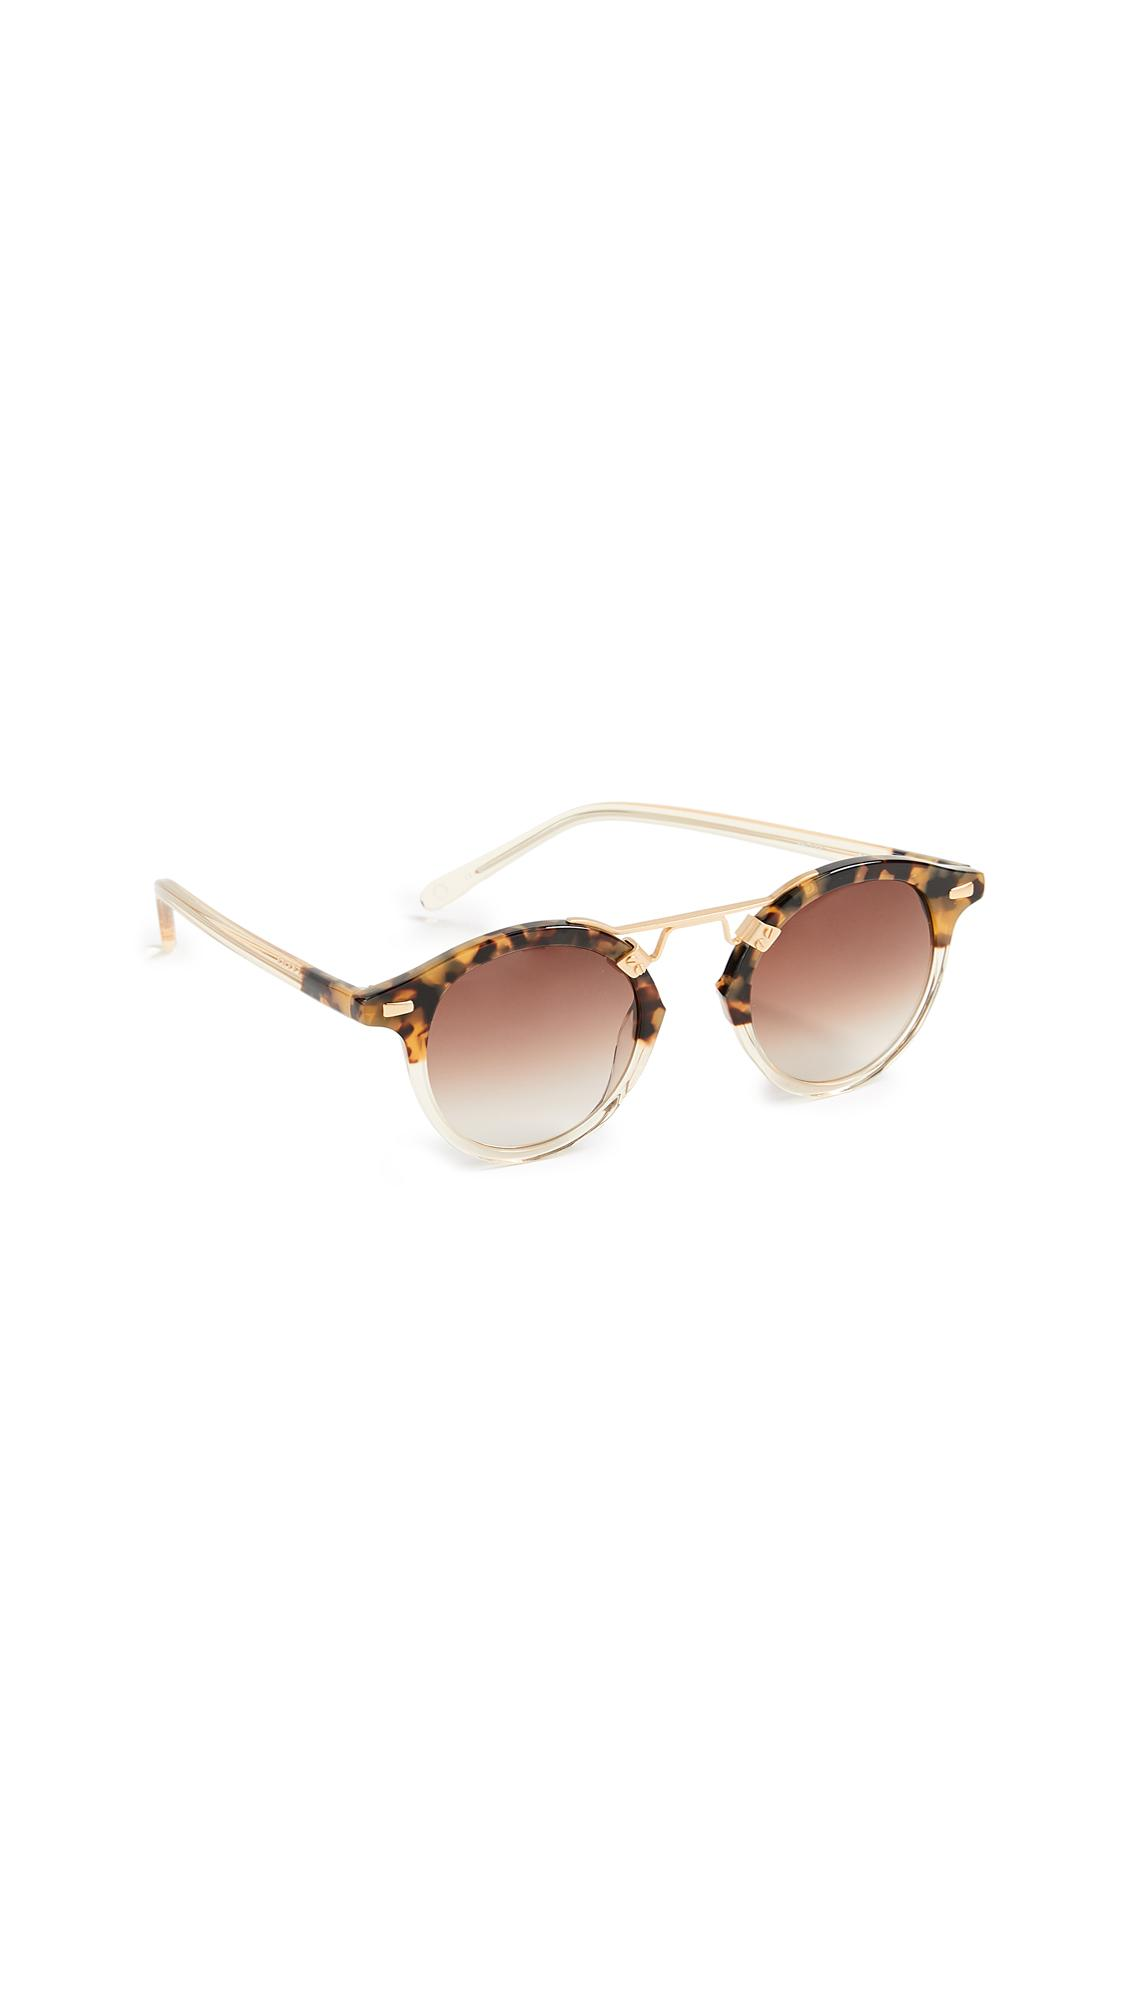 Krewe St. Louis Round Two-tone Sunglasses In Tortoise/champagne